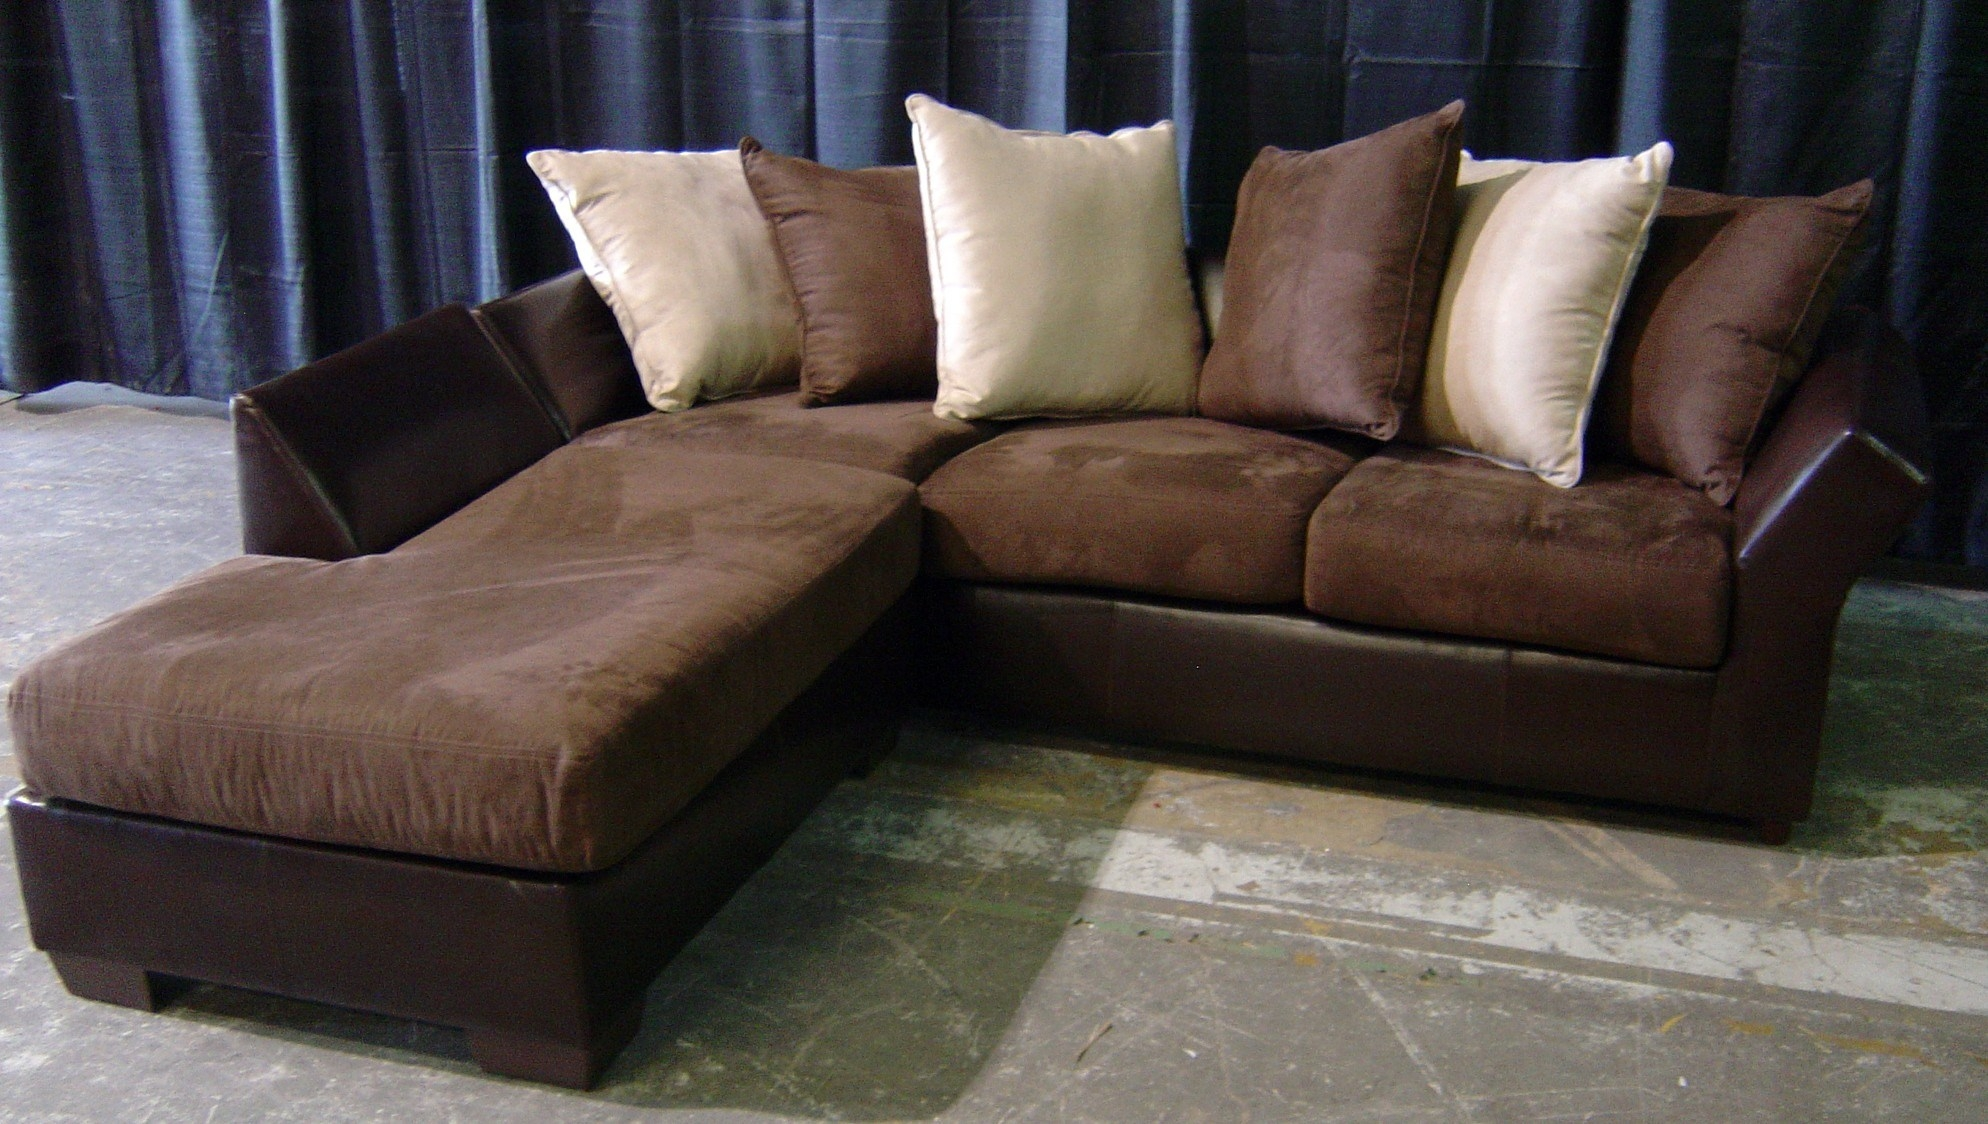 Furniture Brown Leather Sectional Couches Craigslist Missoula Intended For Craigslist Sectional Sofa (#6 of 12)